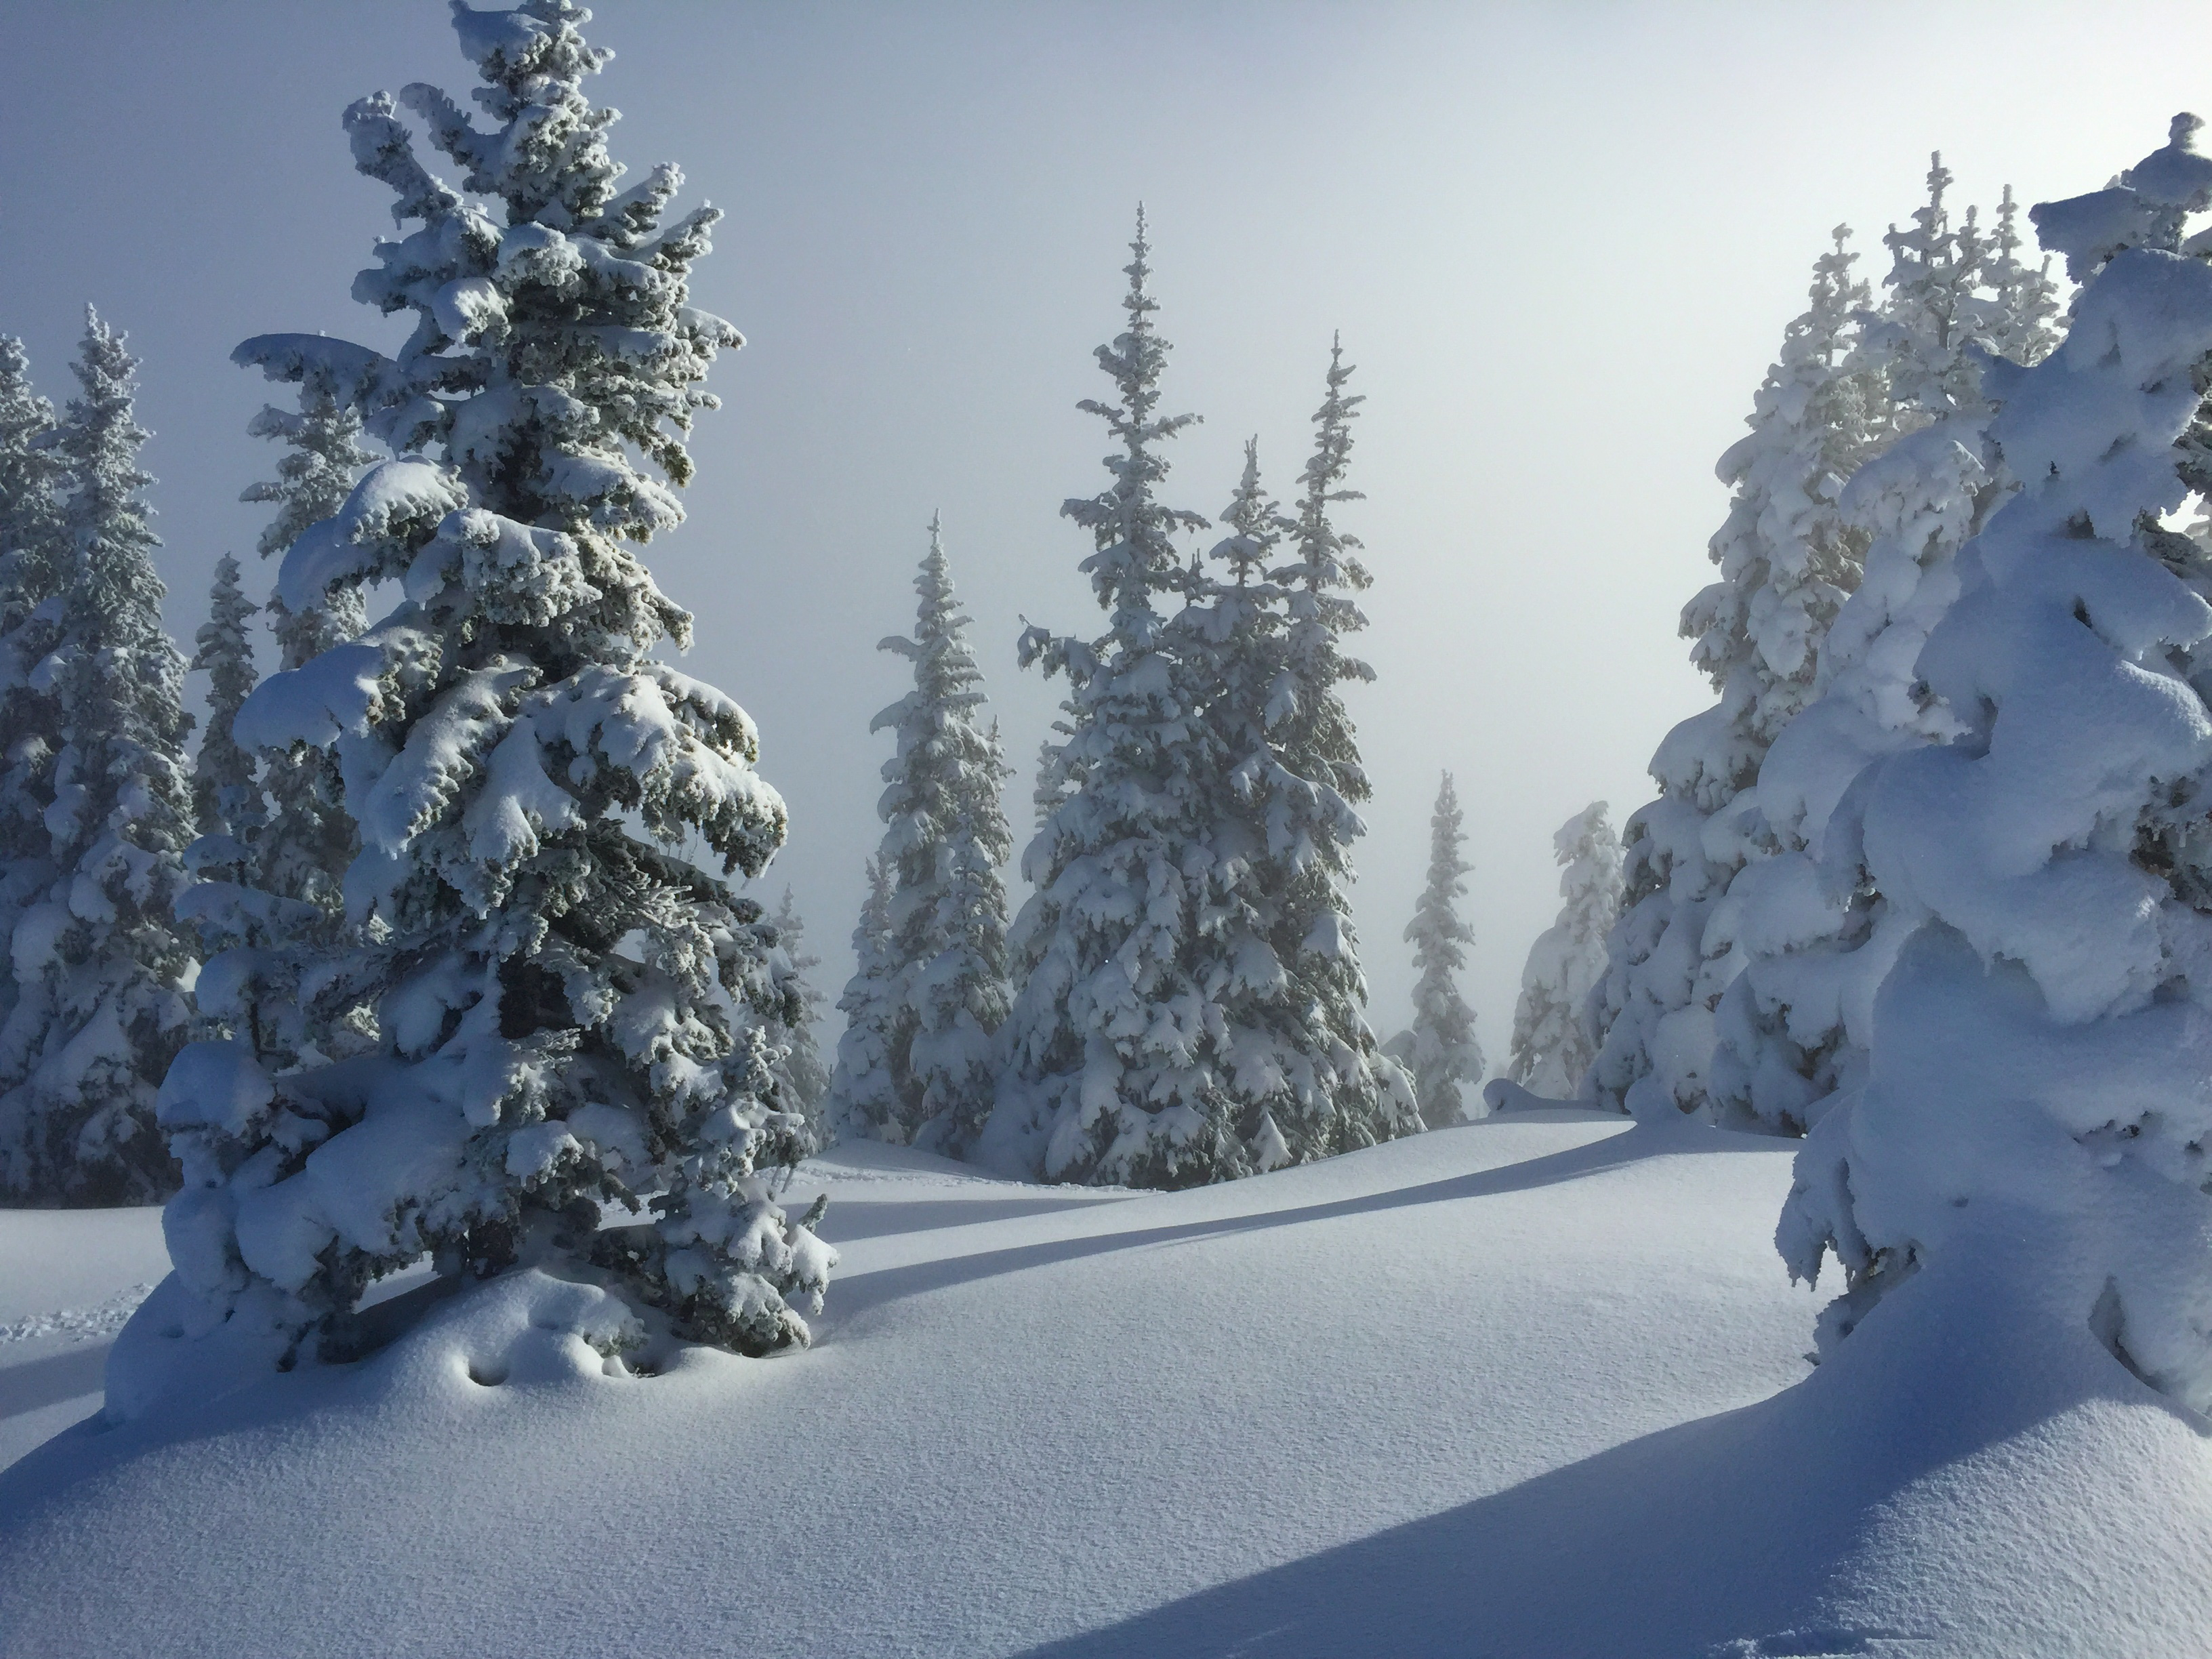 Unskied trees in the afternoon light at Crystal.